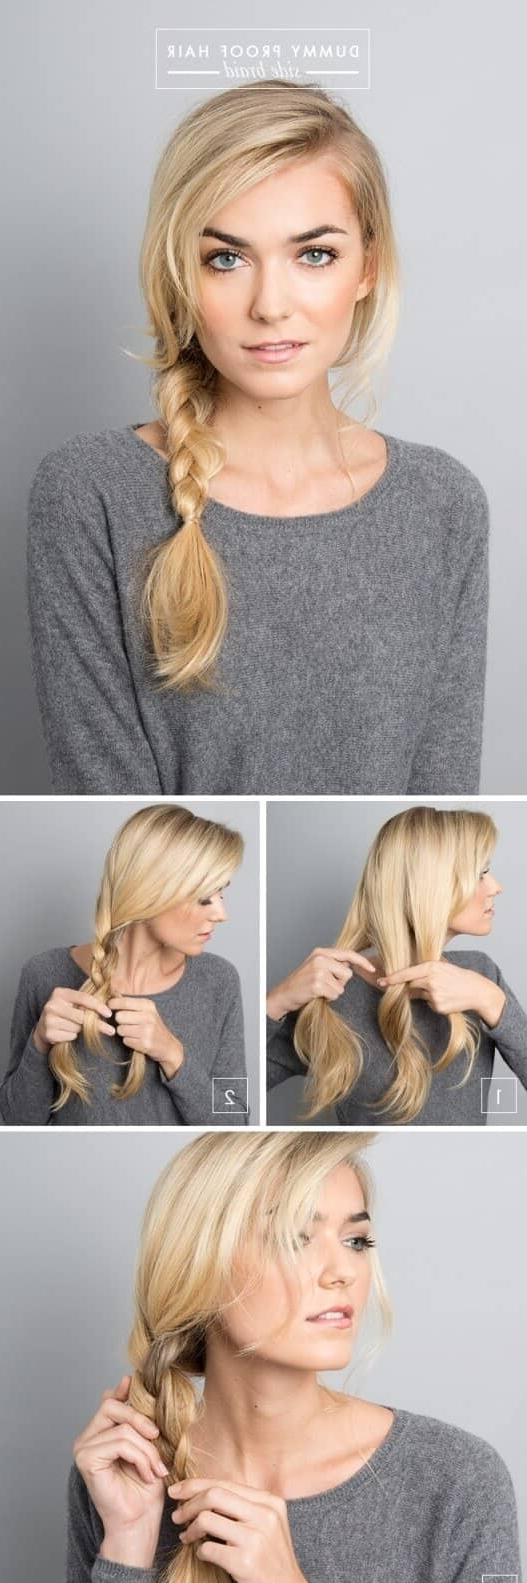 Popular Simple Messy Side Ponytail Hairstyles Inside 25 Effortless Side Braid Hairstyles To Make You Feel Special (View 5 of 20)